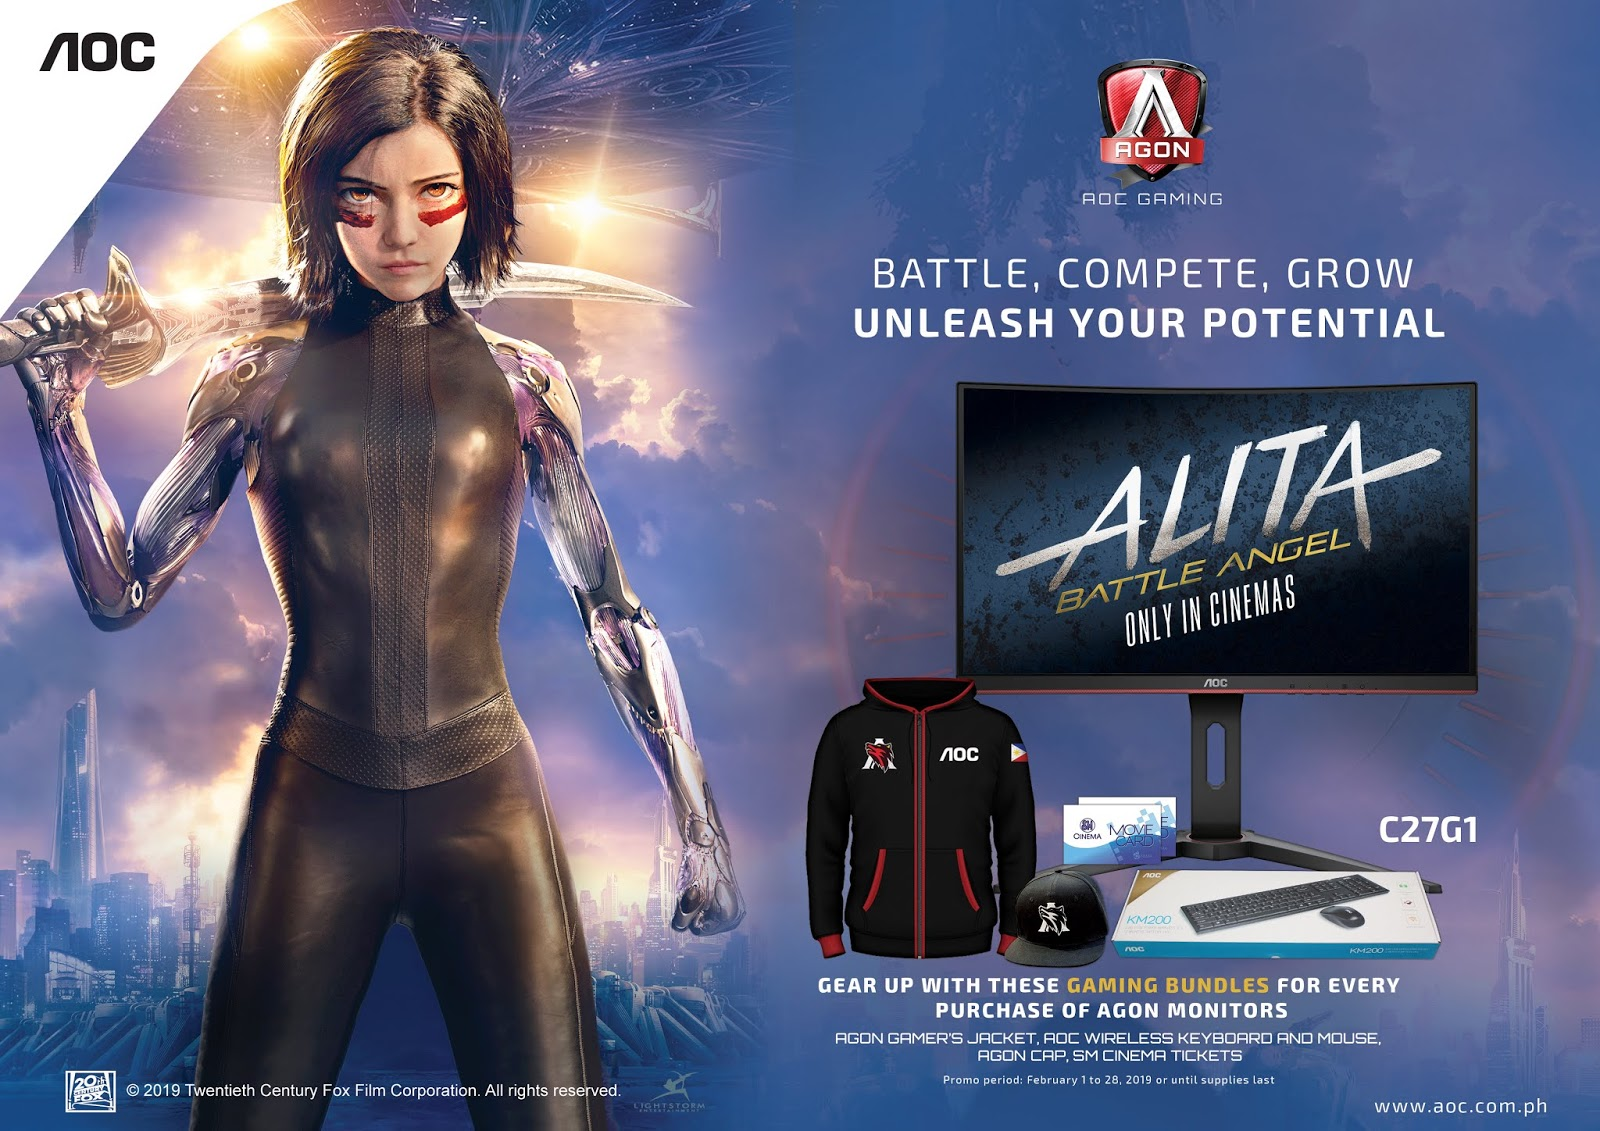 Snag this Gaming Bundles for every purchase of Agon Monitors as AOC partners with Twentieth Century Fox for Alita: Battle Angel